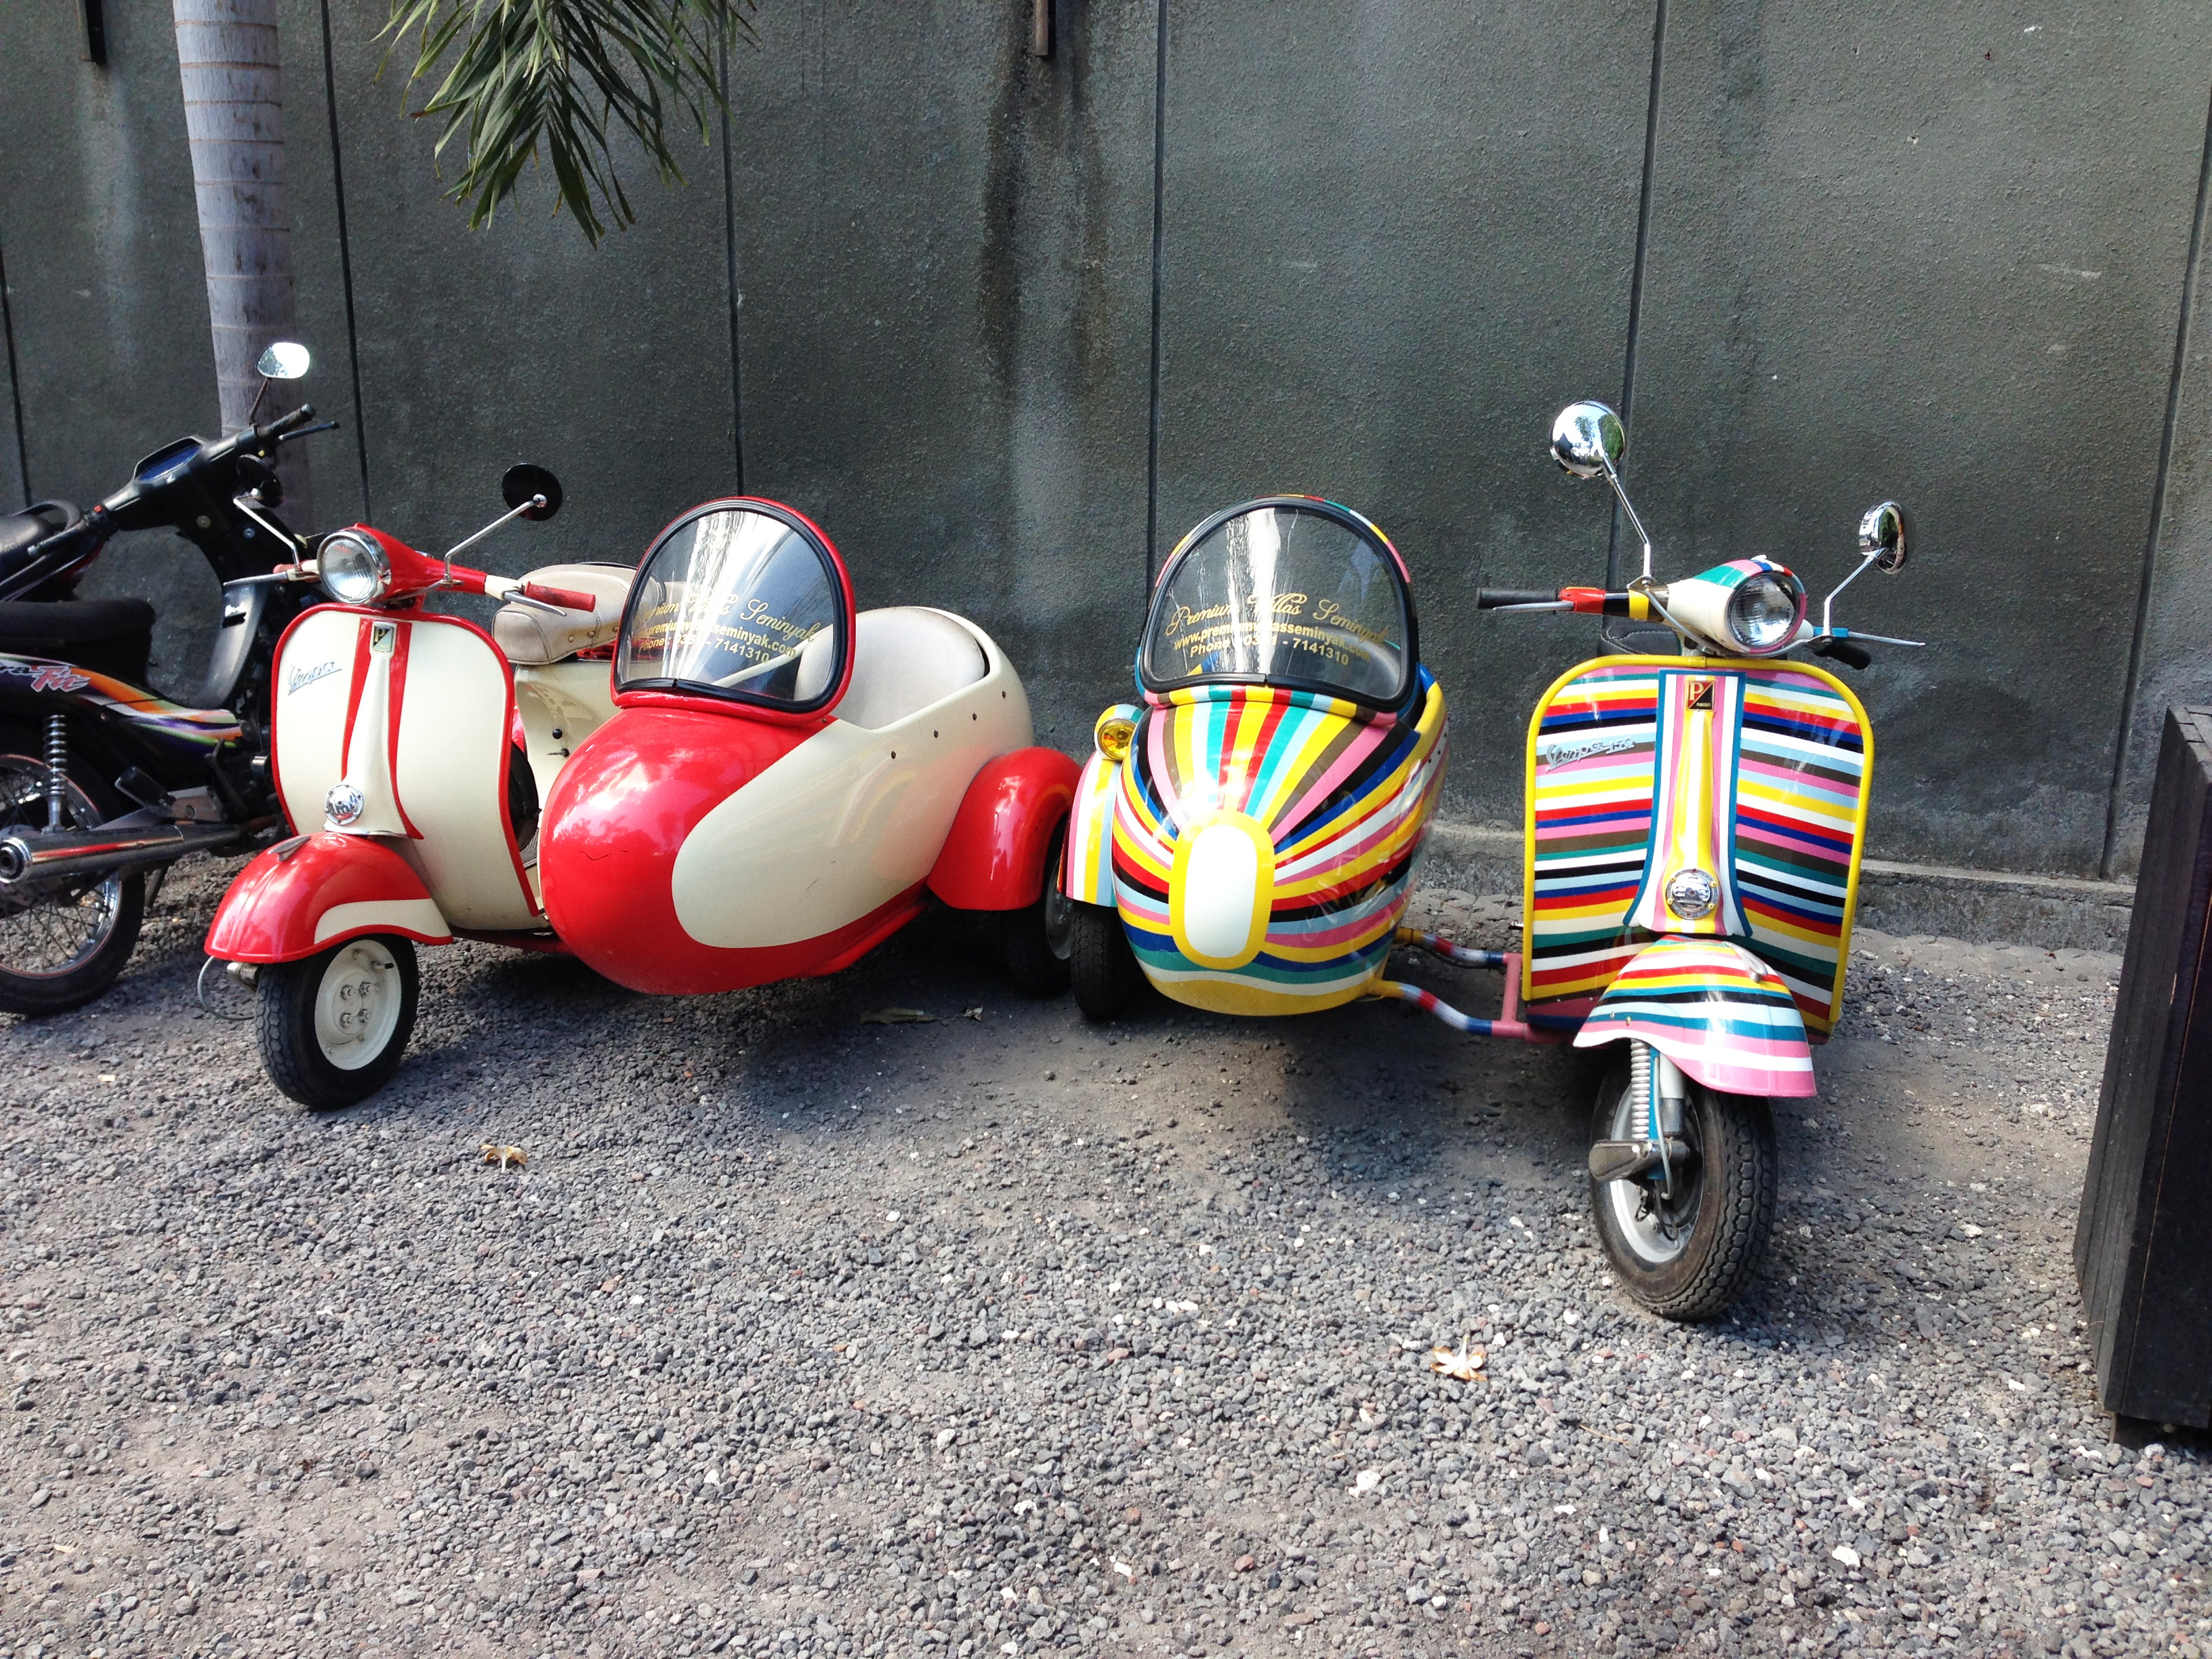 Vintage scooters and matching sidecars are popular amongst motoring fans